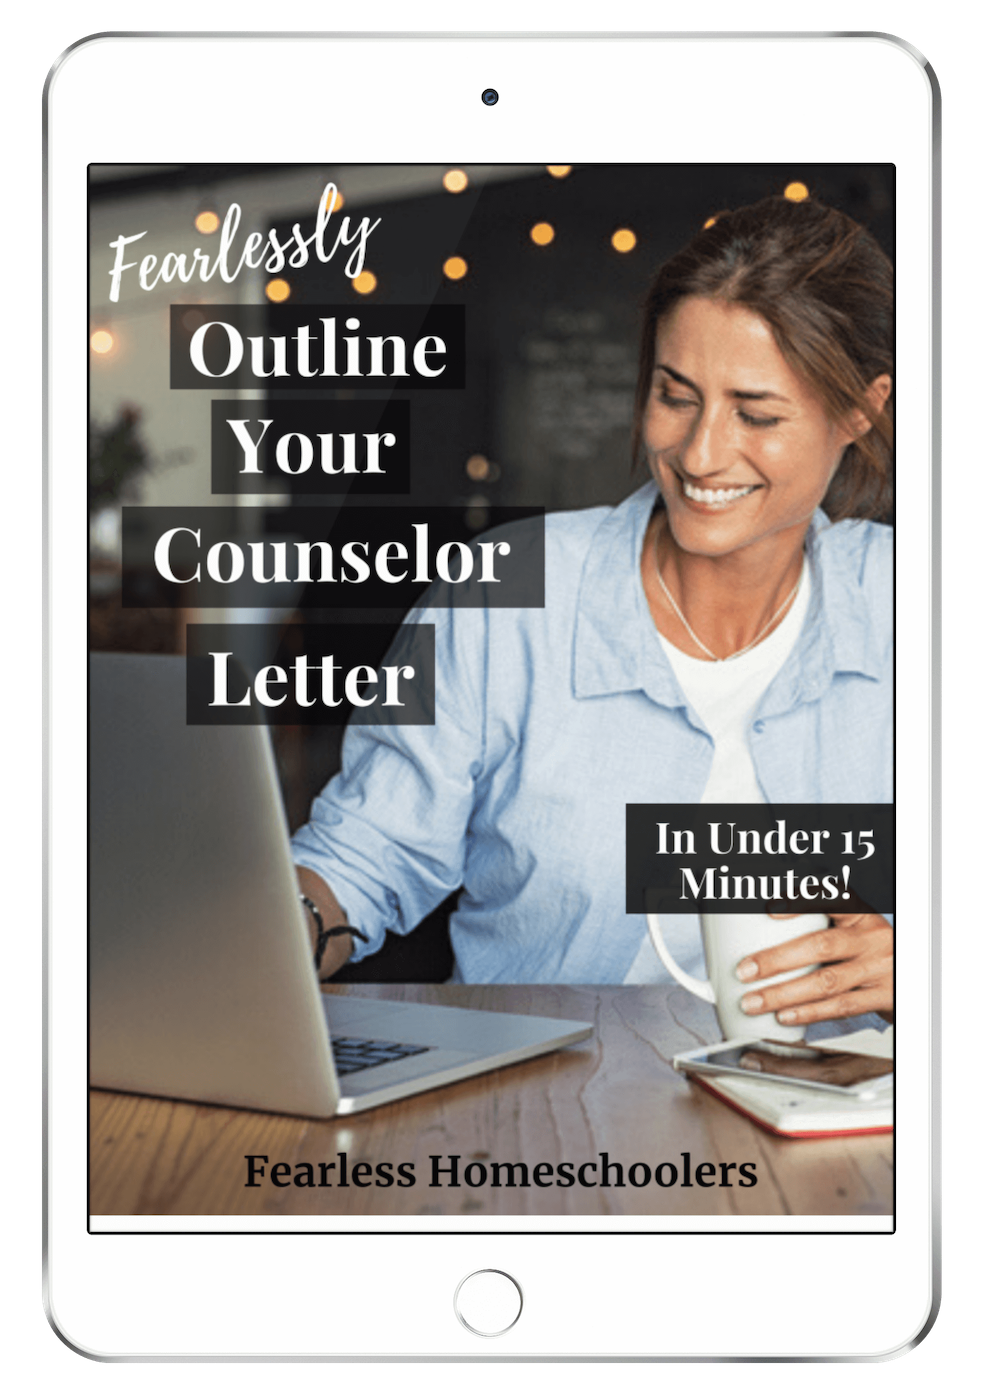 Fearless Homeschoolers counselor letter